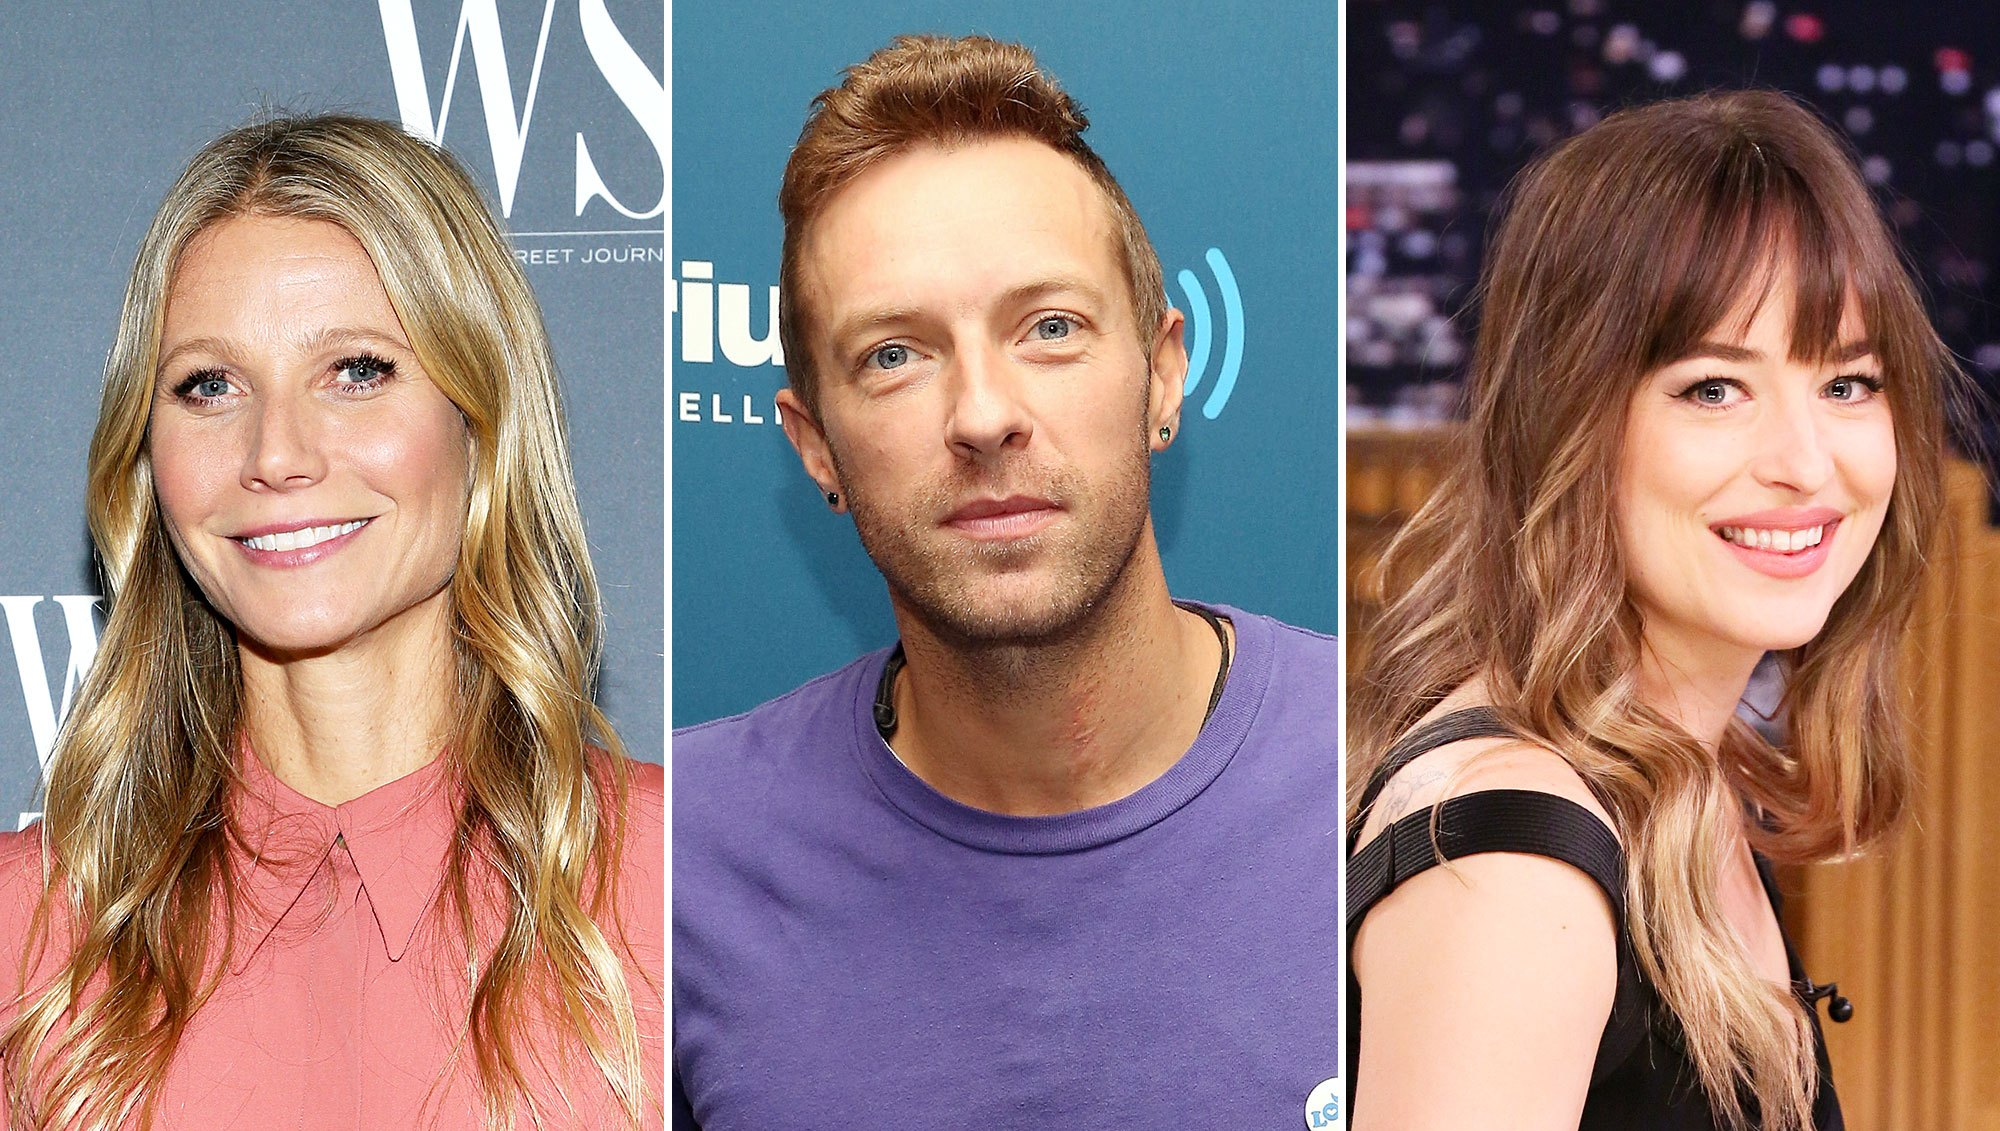 Gwyneth Paltrow Chris Martin Girlfriend Dakota Johnson Bond Instagram